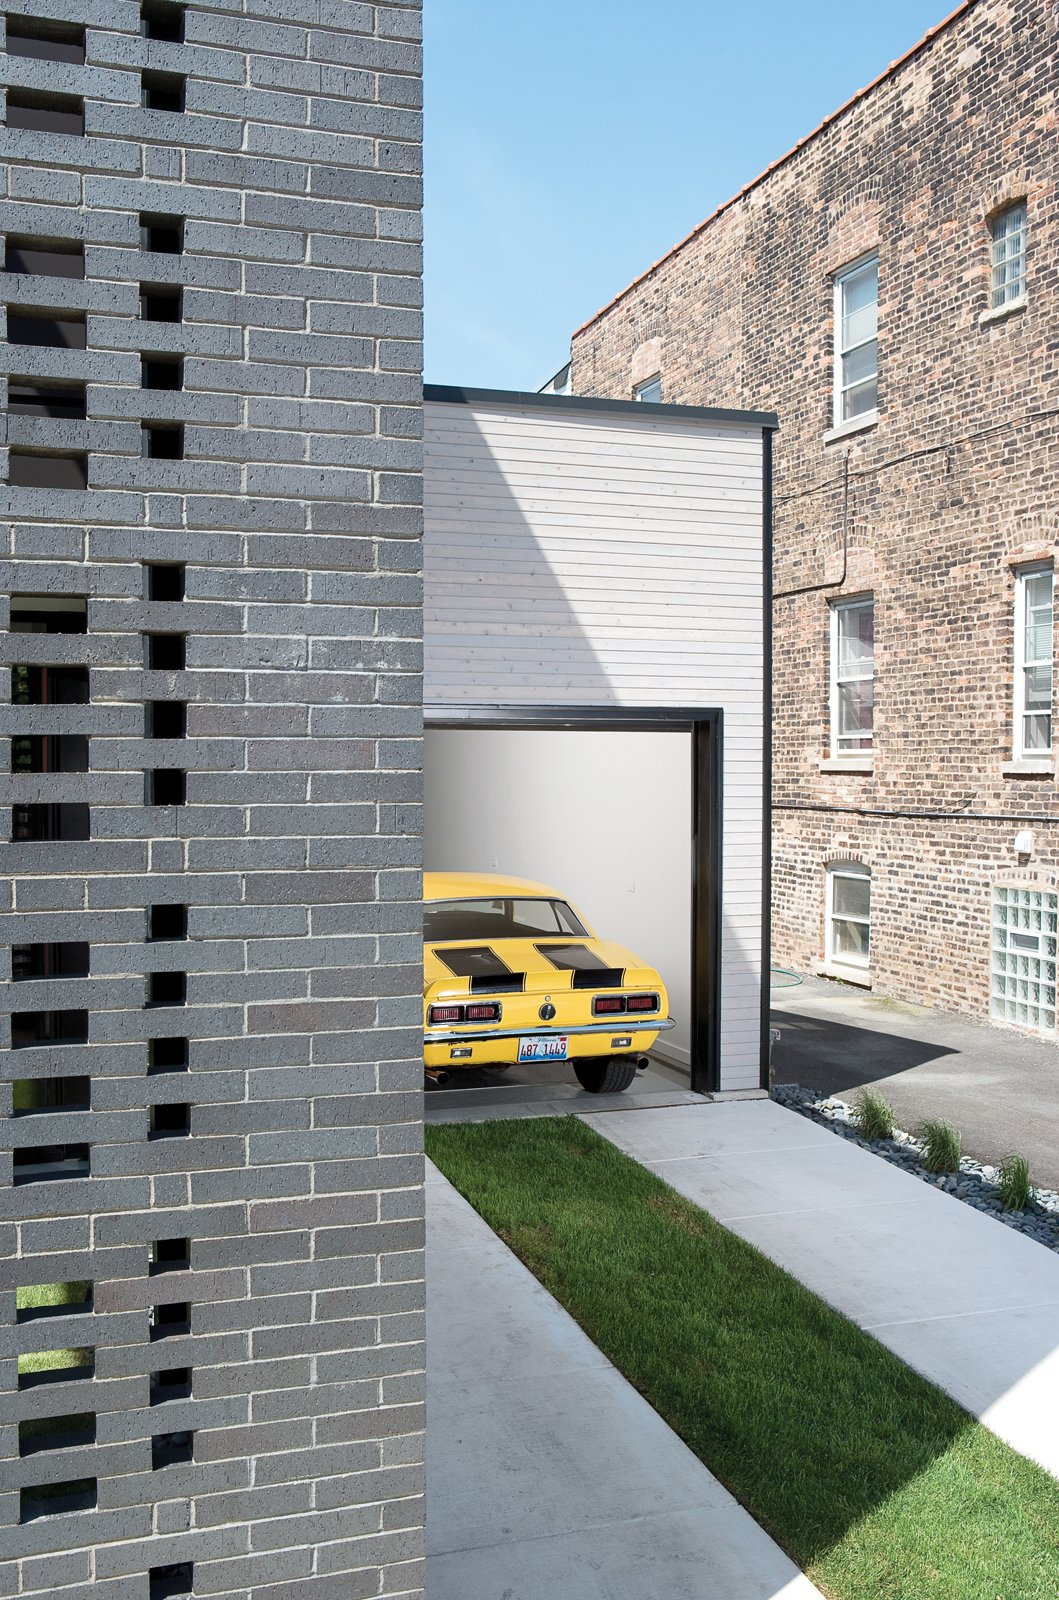 When open, the garage enables the owners to work on their vehicles while visiting with neighbors who do the same. Tagged: Garage and Attached Garage. The Brick Weave House in Chicago - Photo 10 of 10